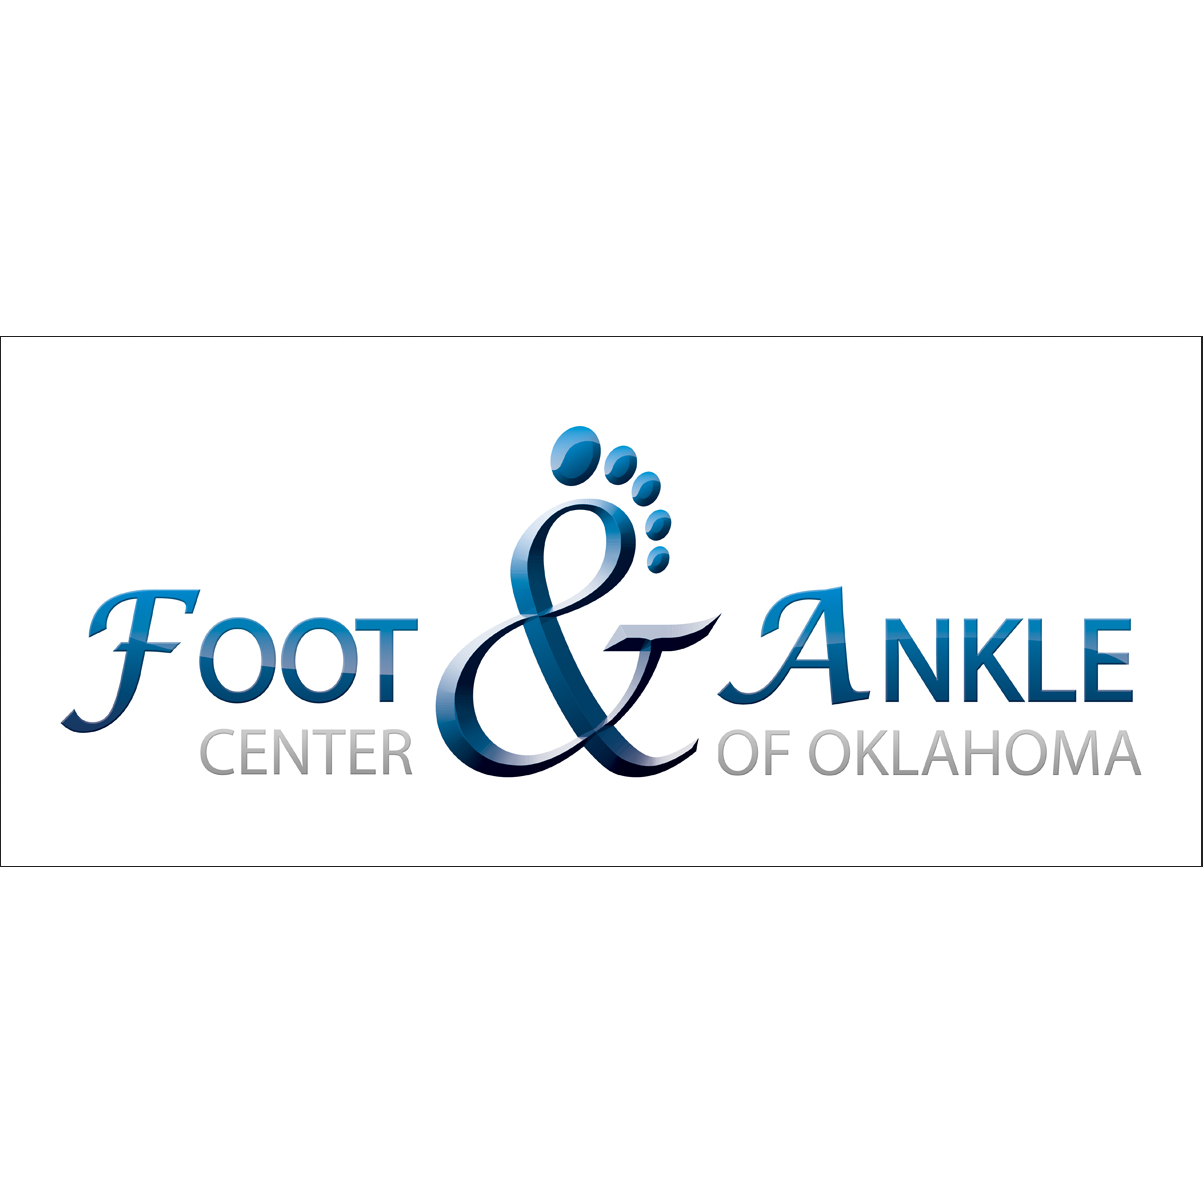 Foot & Ankle Center of Oklahoma